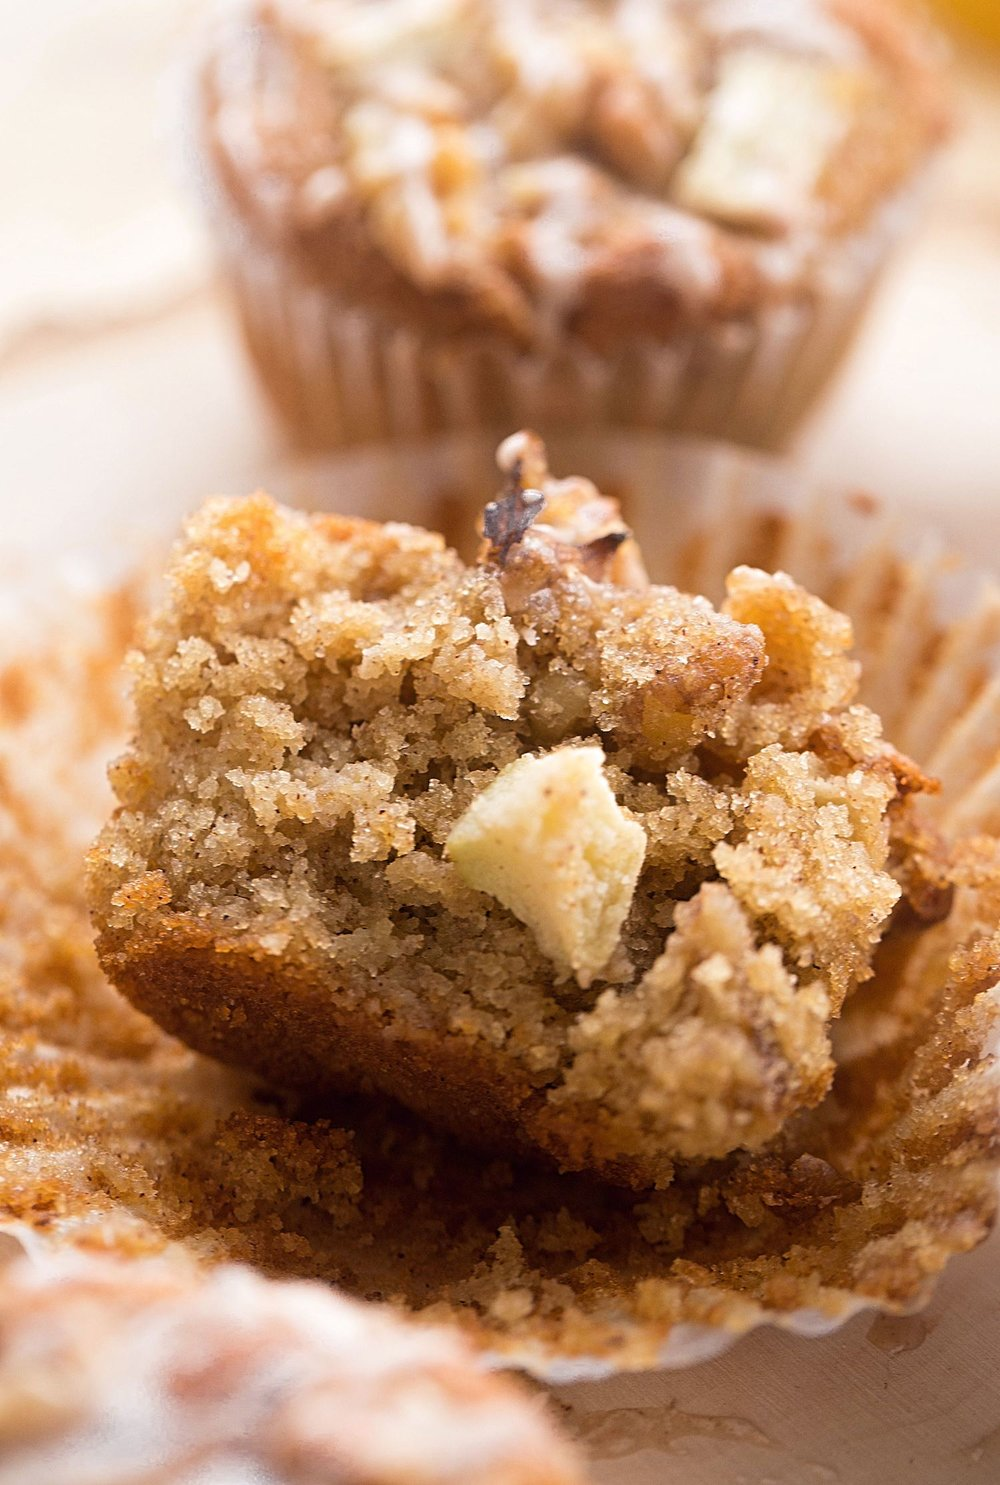 Gluten-Free Apple Cinnamon Muffins: light, moist, almost gooey gf muffins, filled with tart apples, crunchy walnuts, and spicy cinnamon. So good! | TrufflesandTrends.com